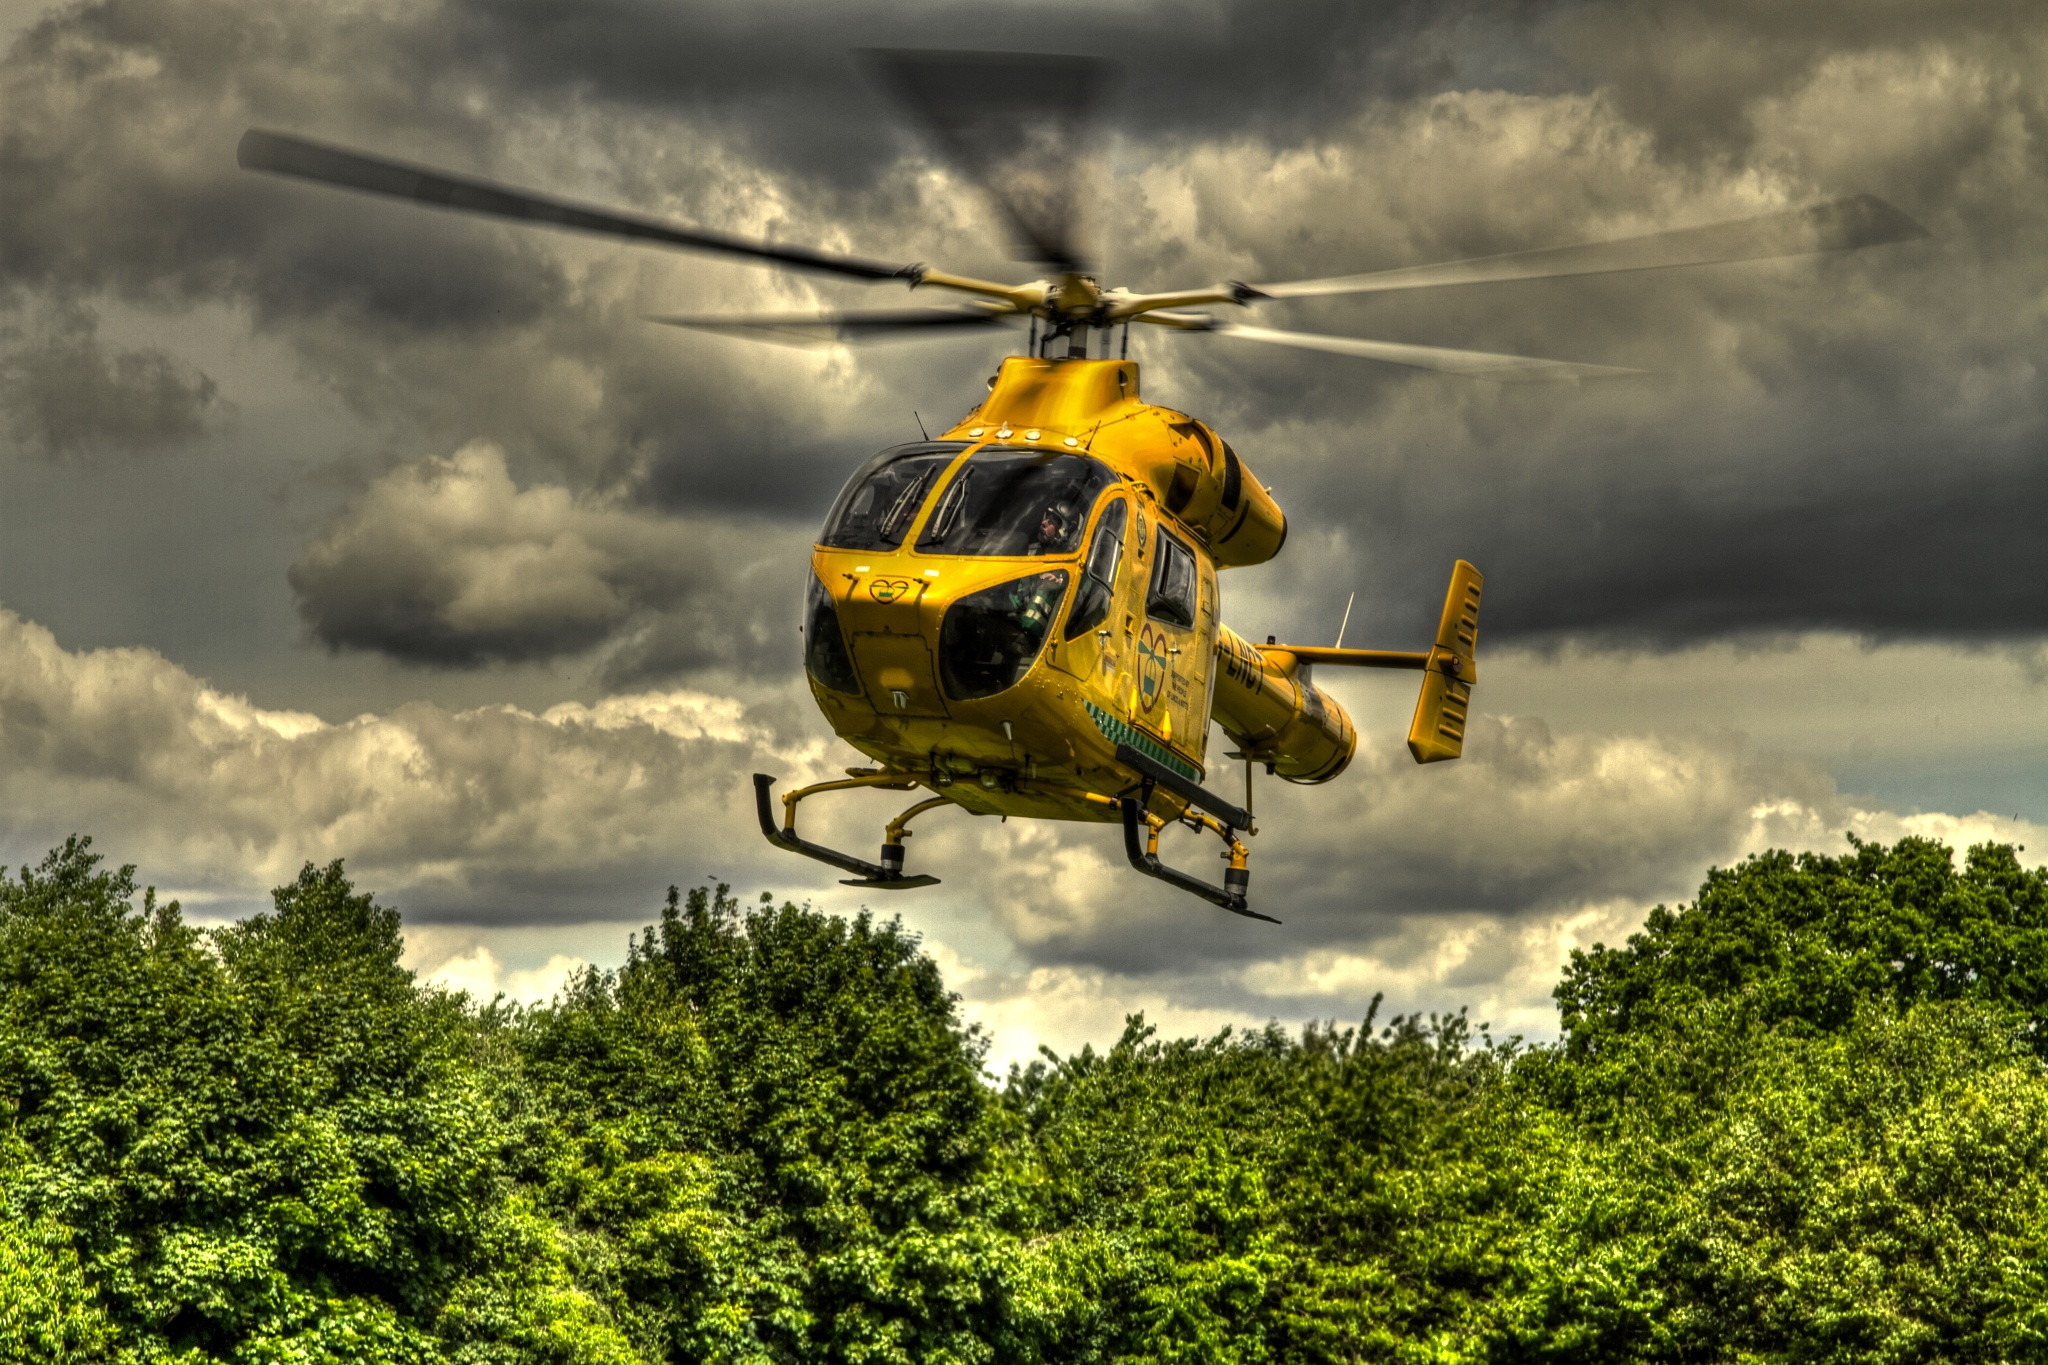 Air Ambulance by JR's Photography